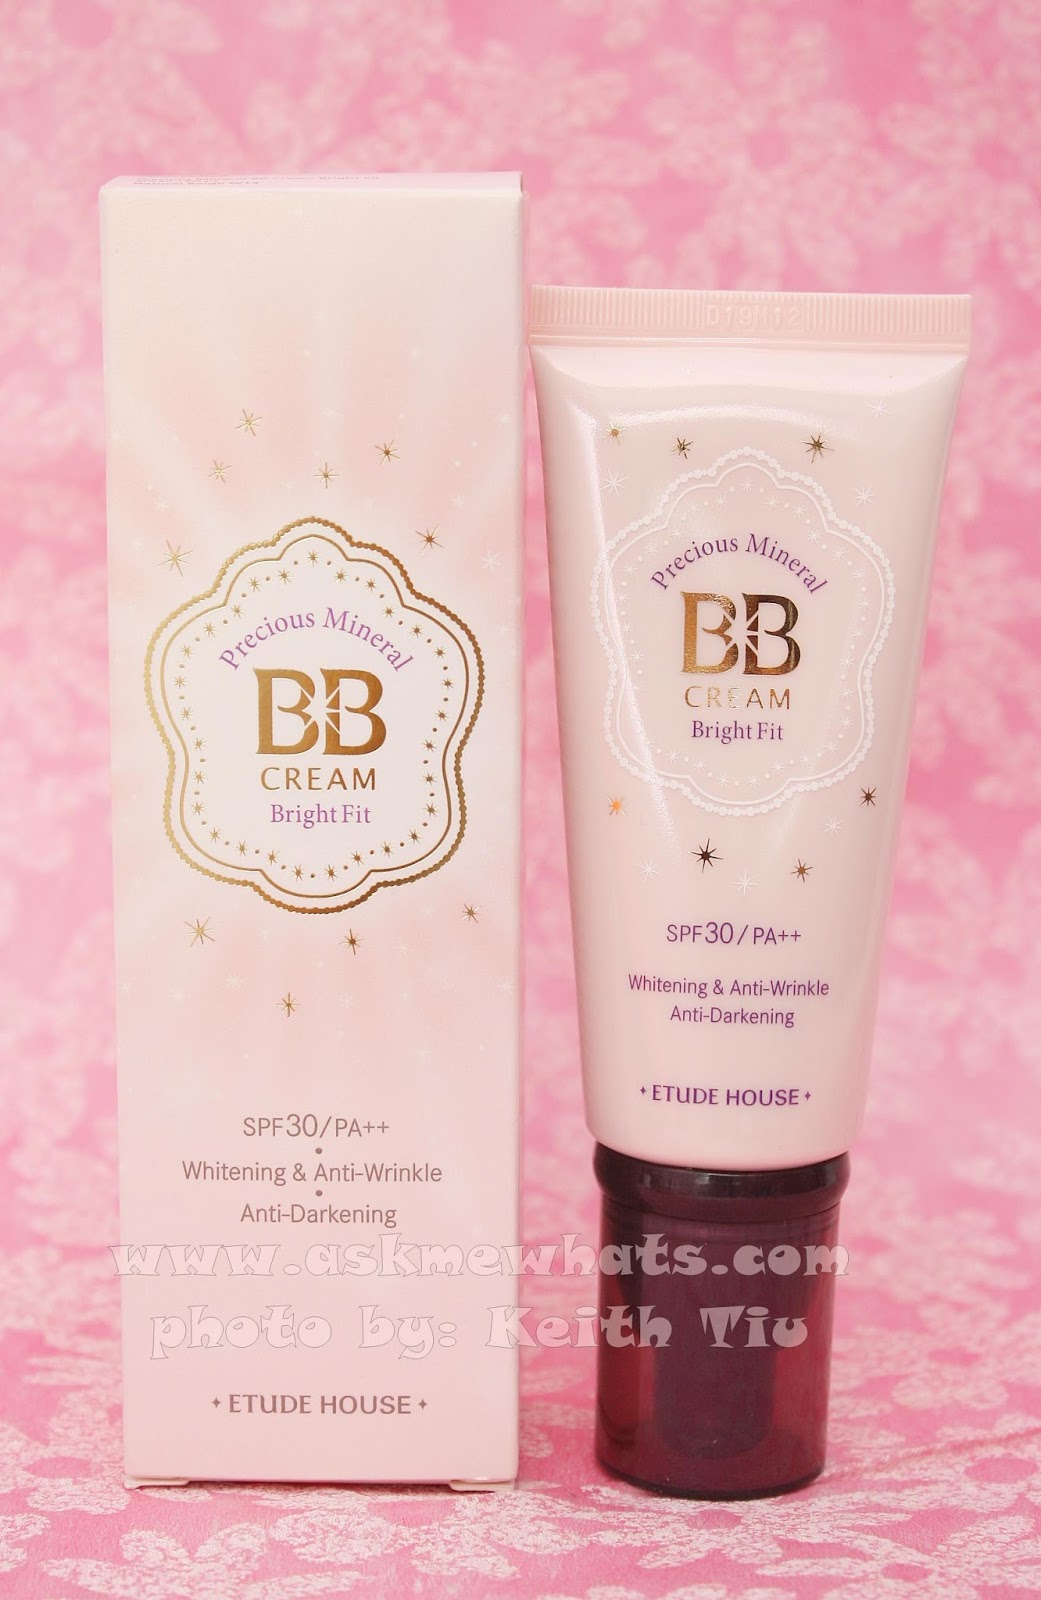 a photo and review of Etude House Precious Mineral BB Cream Bright Fit